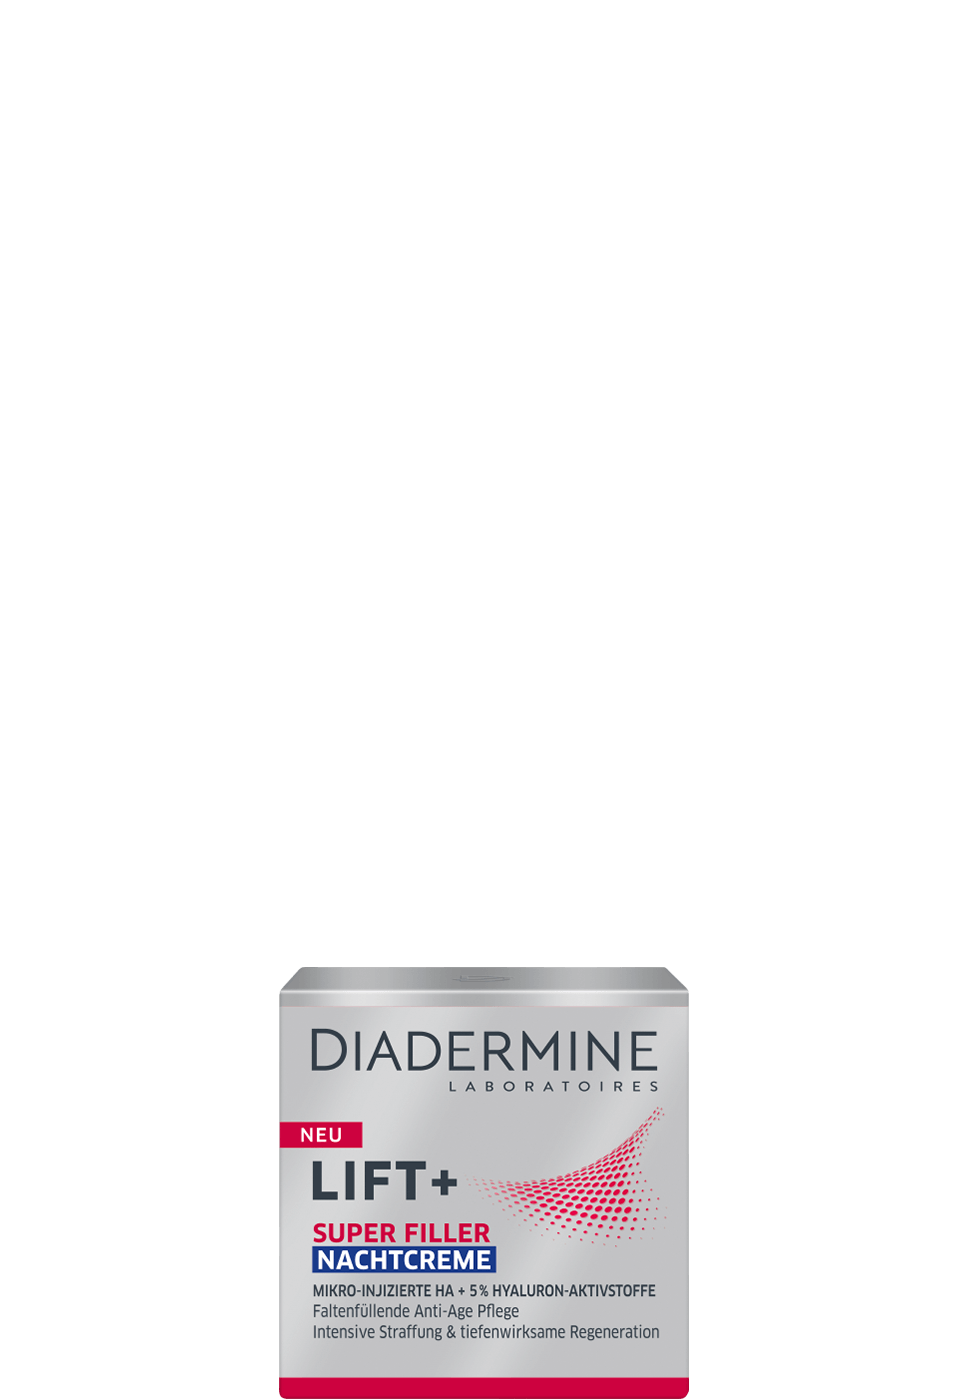 diadermine_at_lift_plus_super_filler_nachtcreme_970x1400